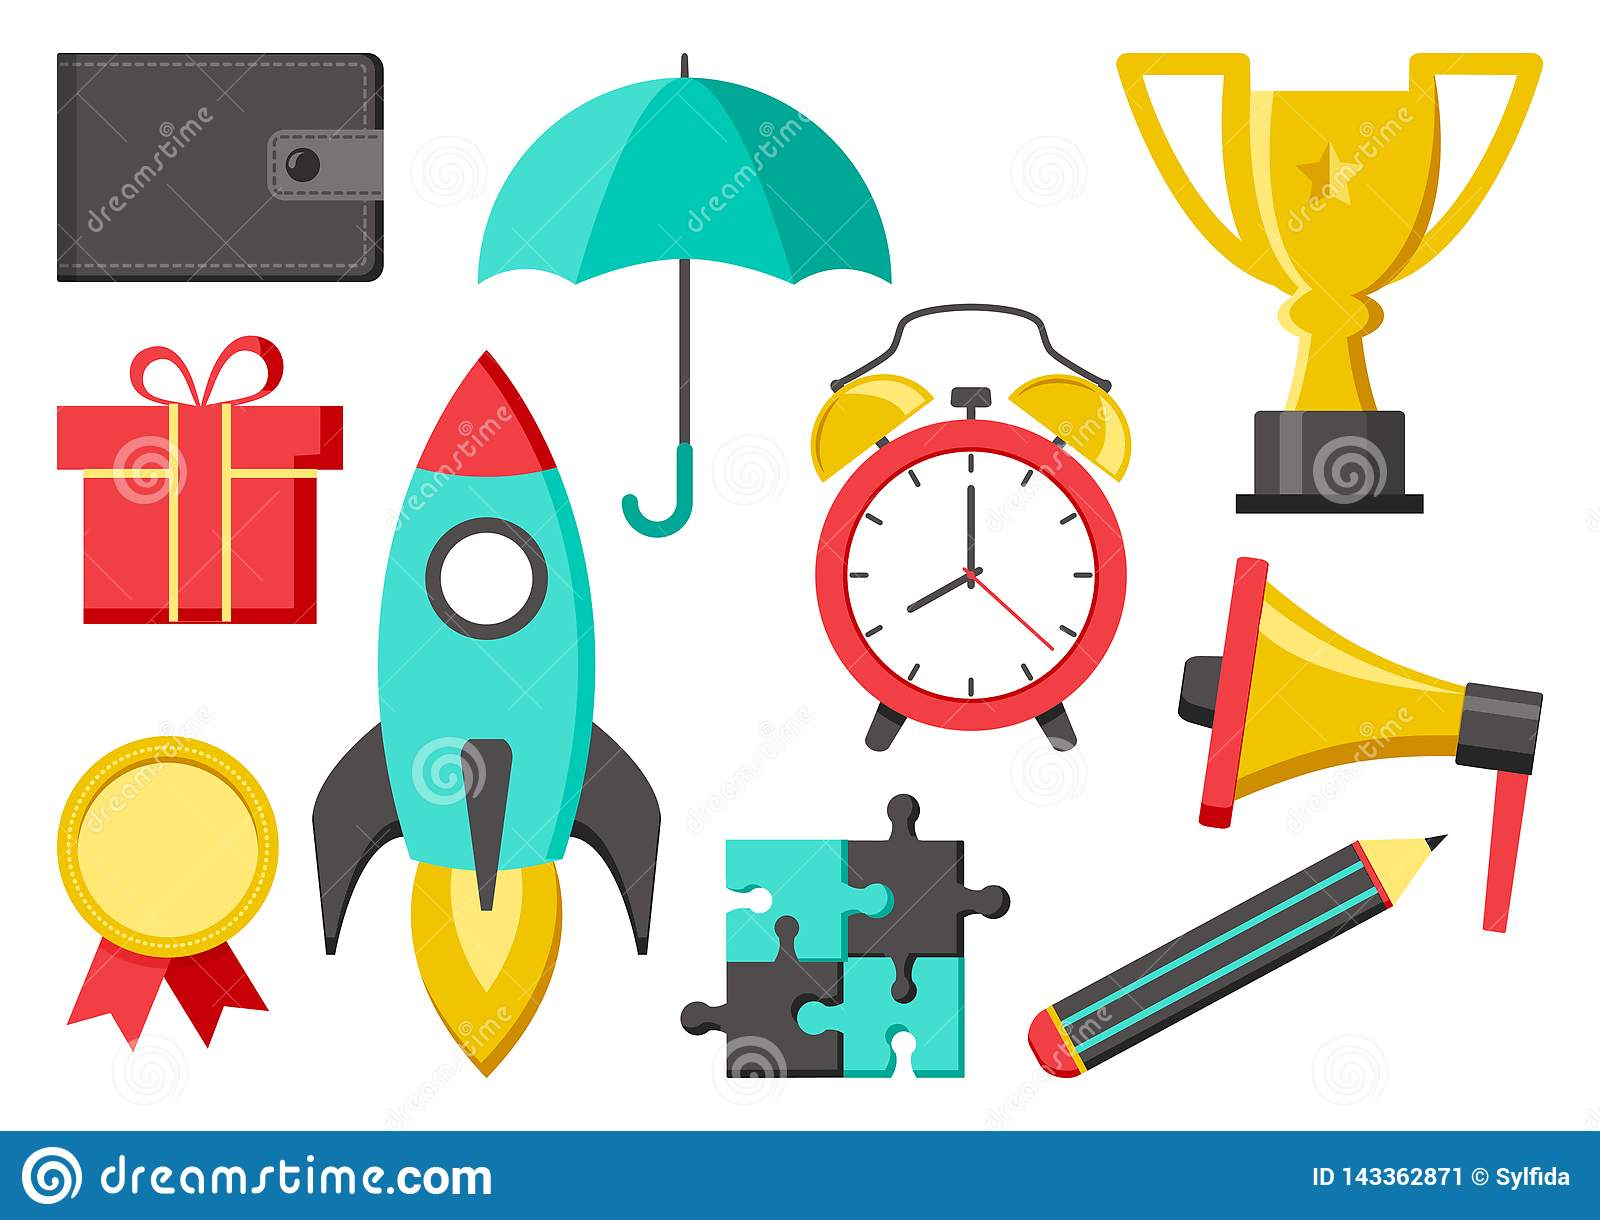 Set of icons for business or education. Wallet, umbrella, cup, medal, rocket, pencil, megaphone, alarm clock, puzzle, gift. Vector